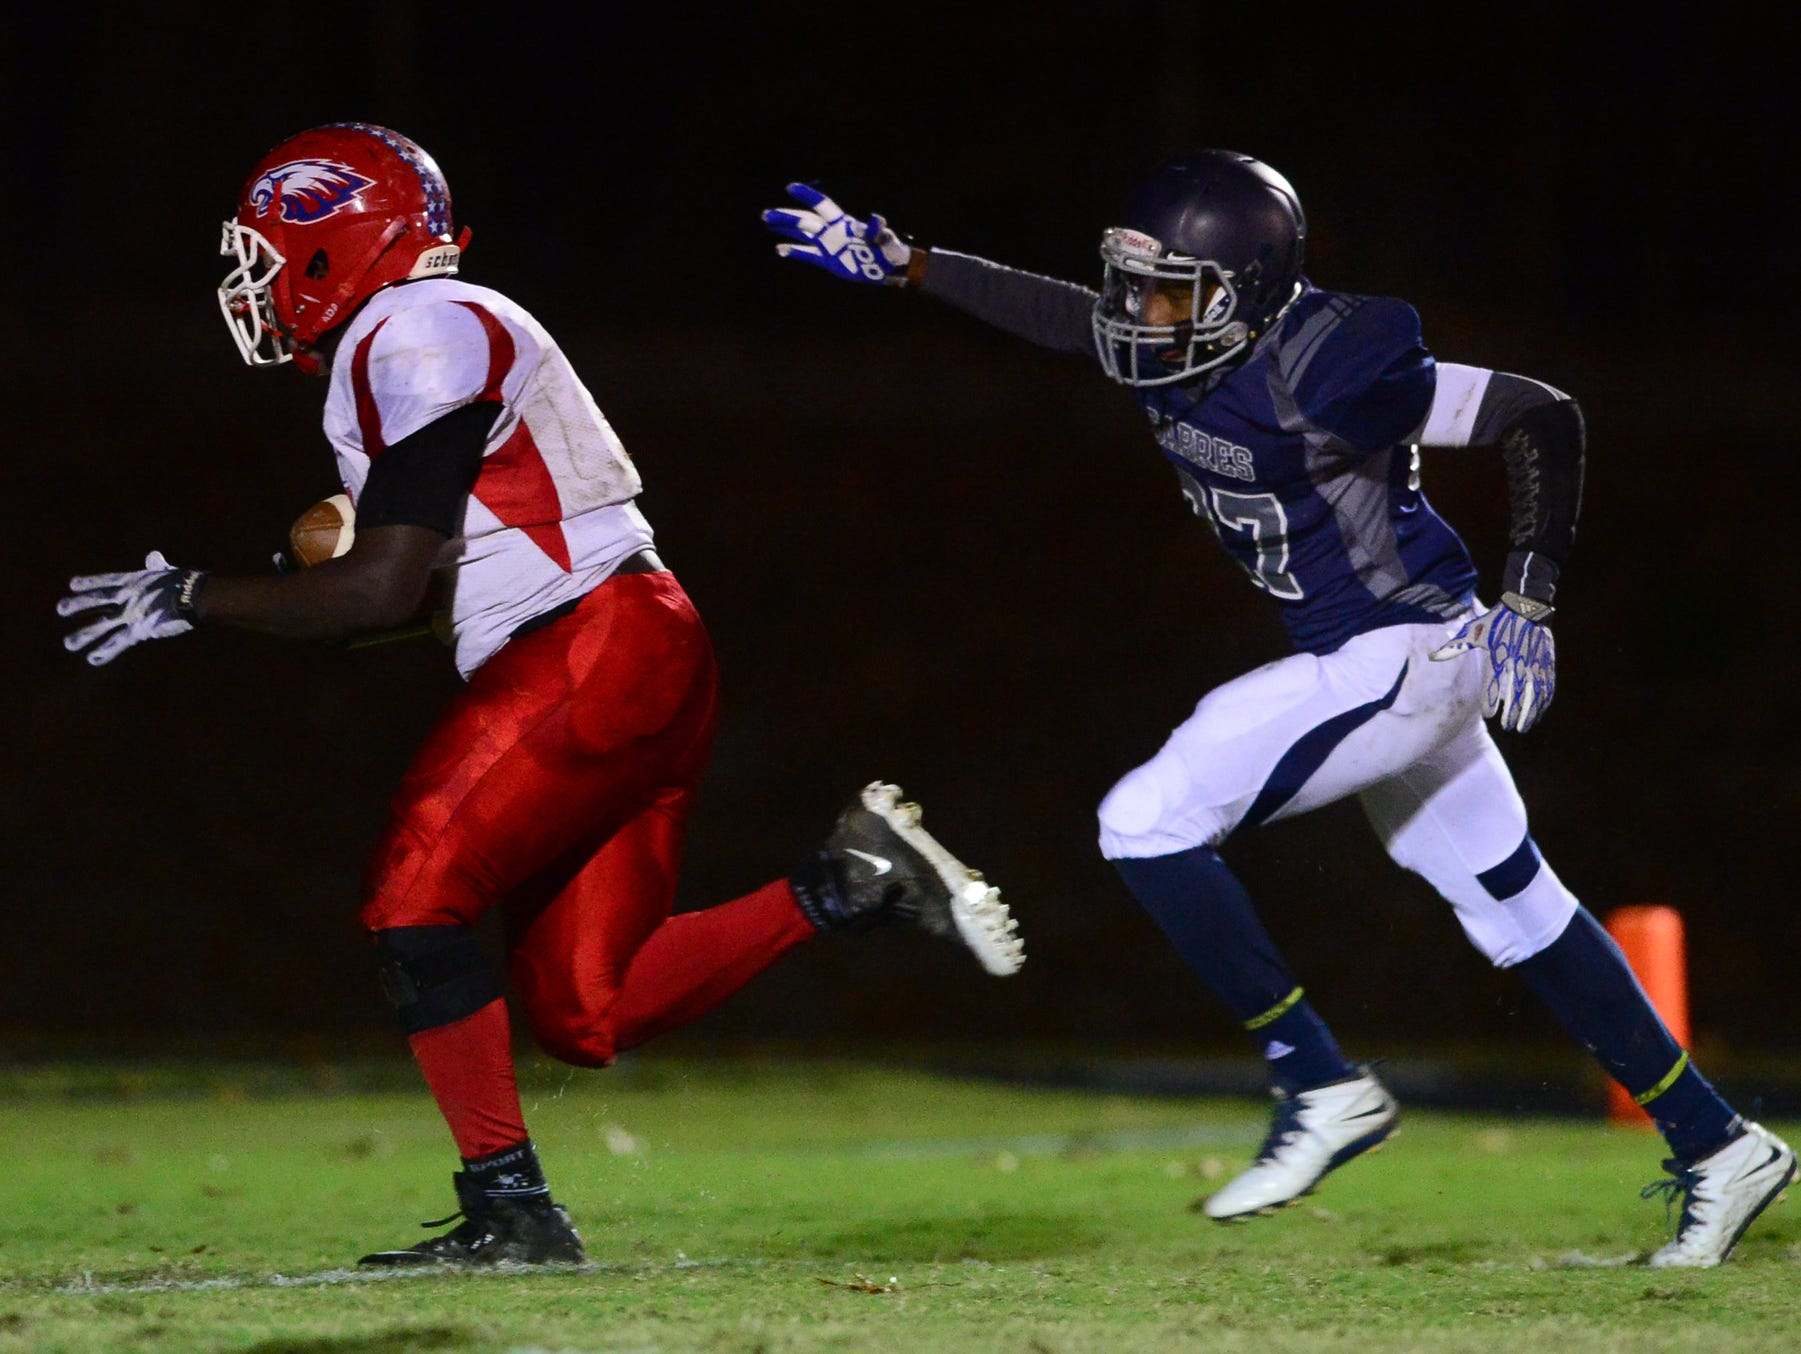 Southside Christian's Austin Greer (27) runs down Wagener-Salley's Napoleon Posey (5) during a football game at Southside Christian on Friday.